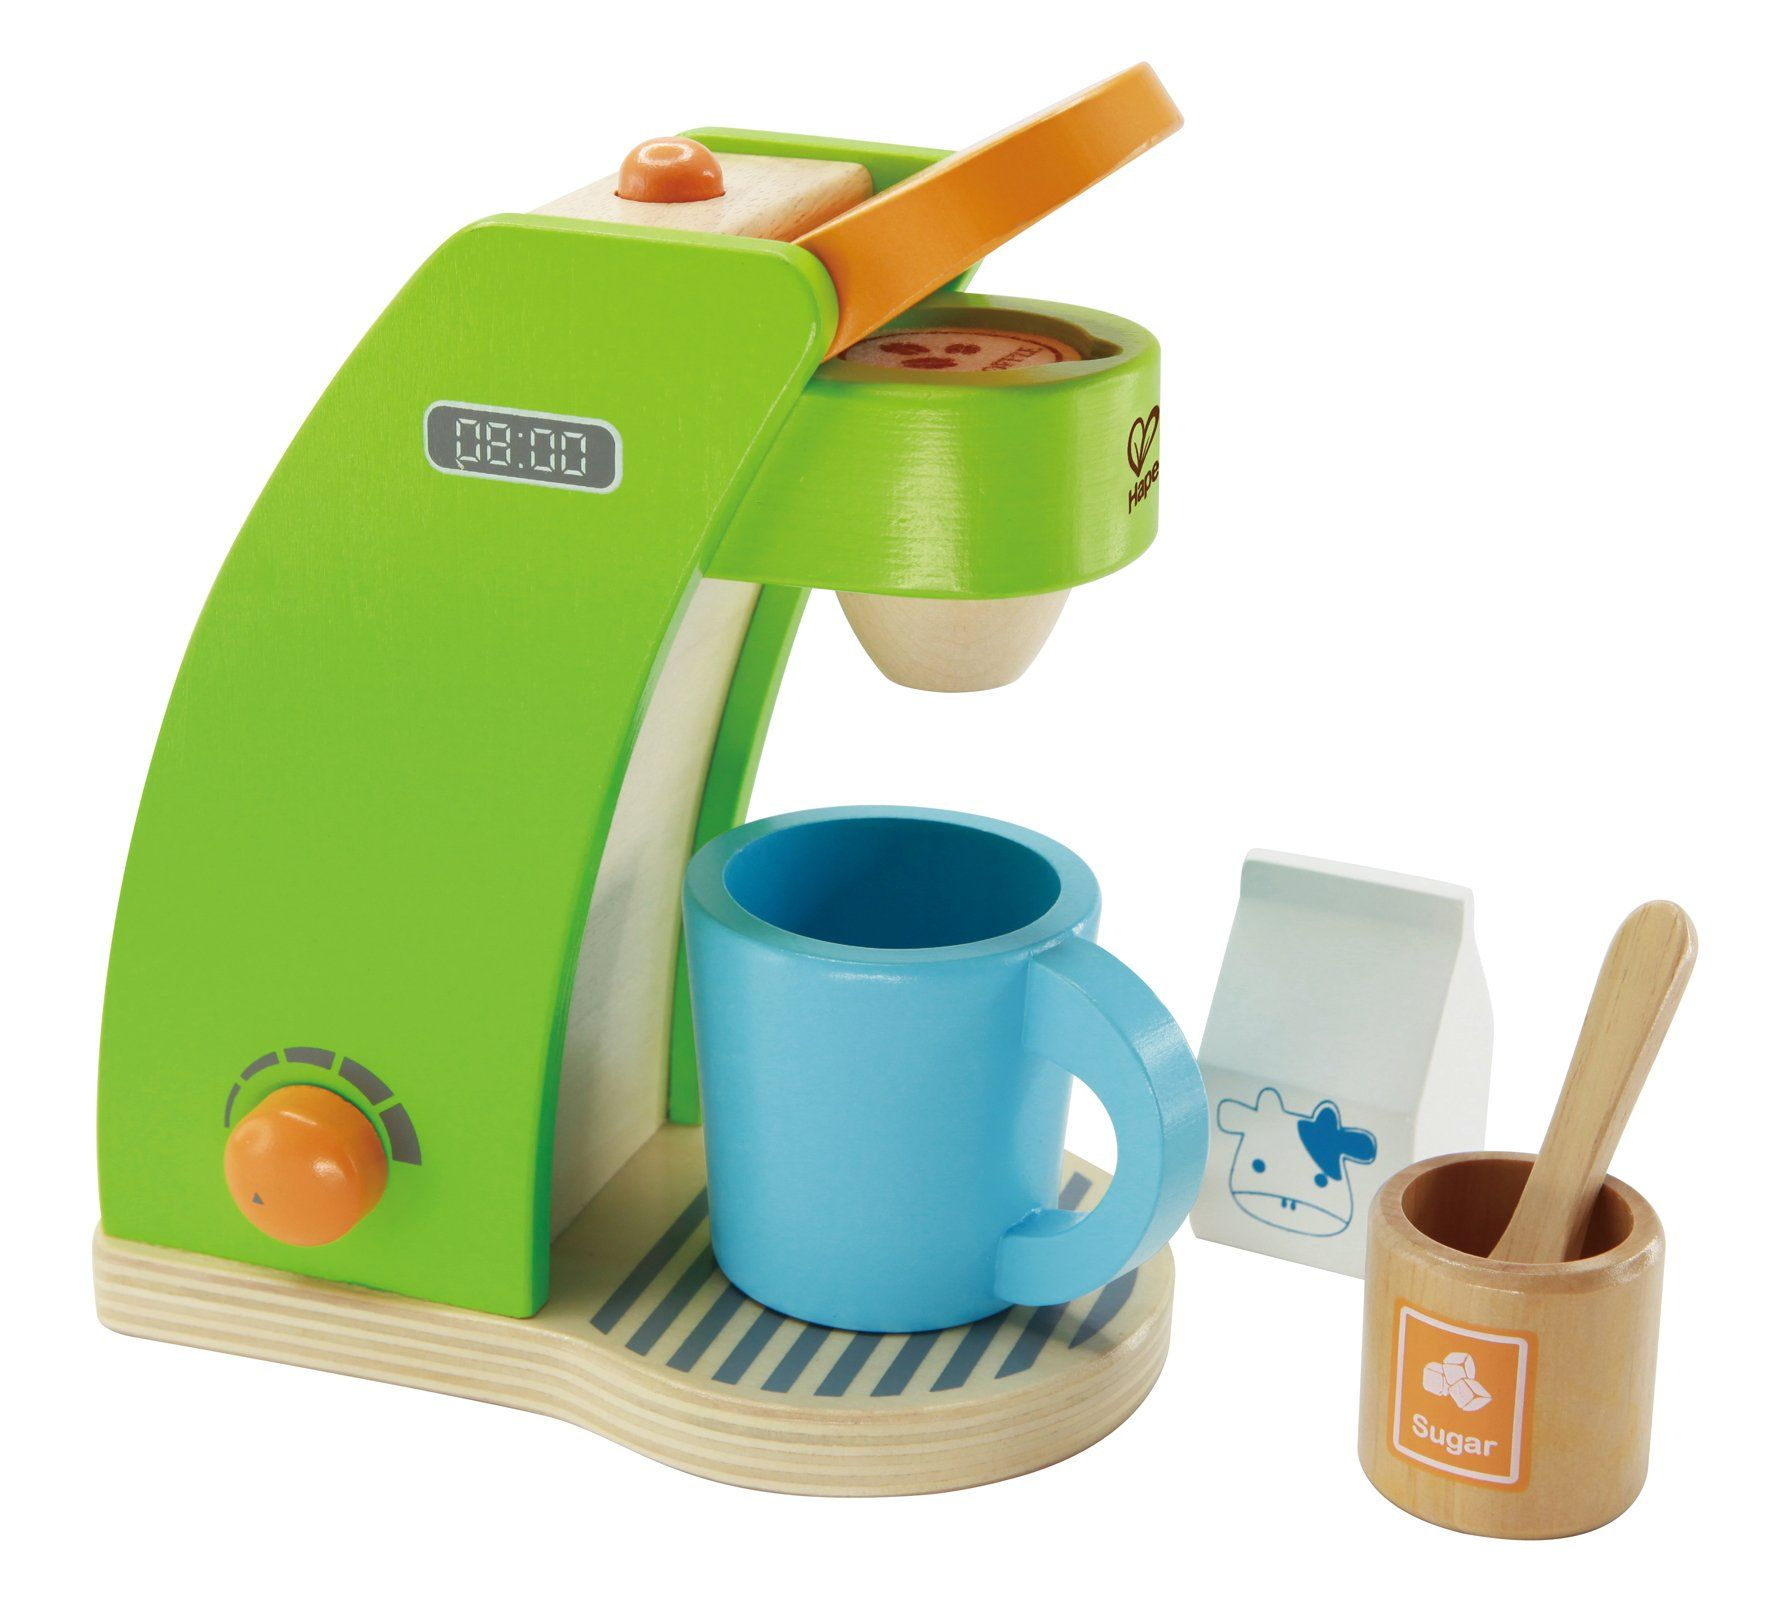 Toys for kids kitchen set  Hape Kidus Coffee Maker Wooden Play Kitchen Set with Accessories